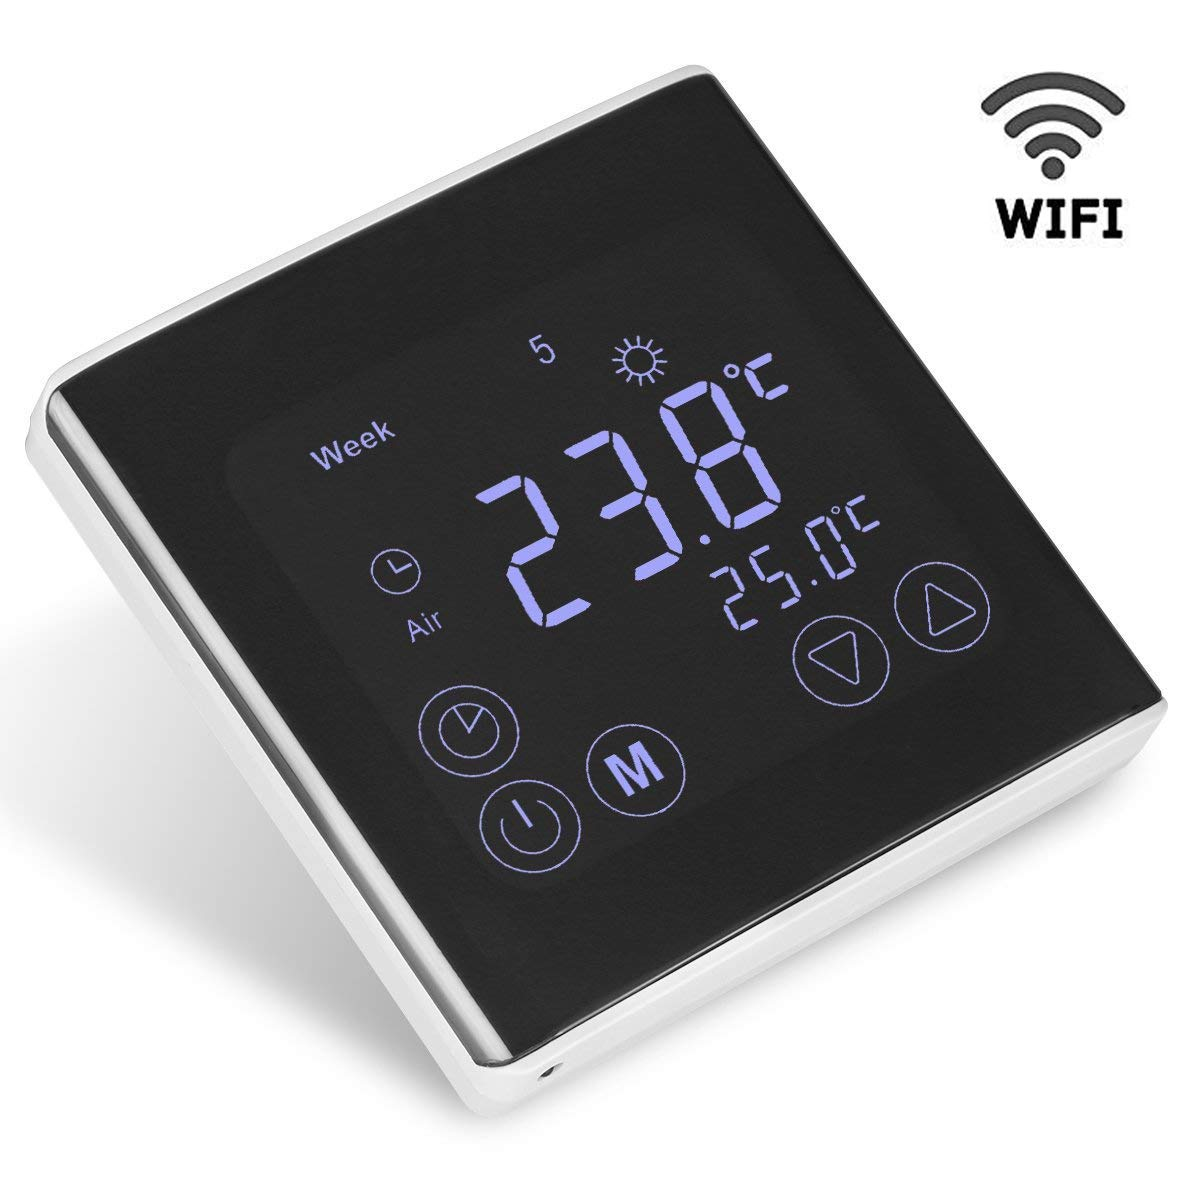 FLOUREON WiFi Thermostat LCD Touchscreen Eating Thermostat Support App Control Centeral Heating Thermostat Programmable 5 +2/6 +1/7 Daily Weekly Underfloor Temperature Controller